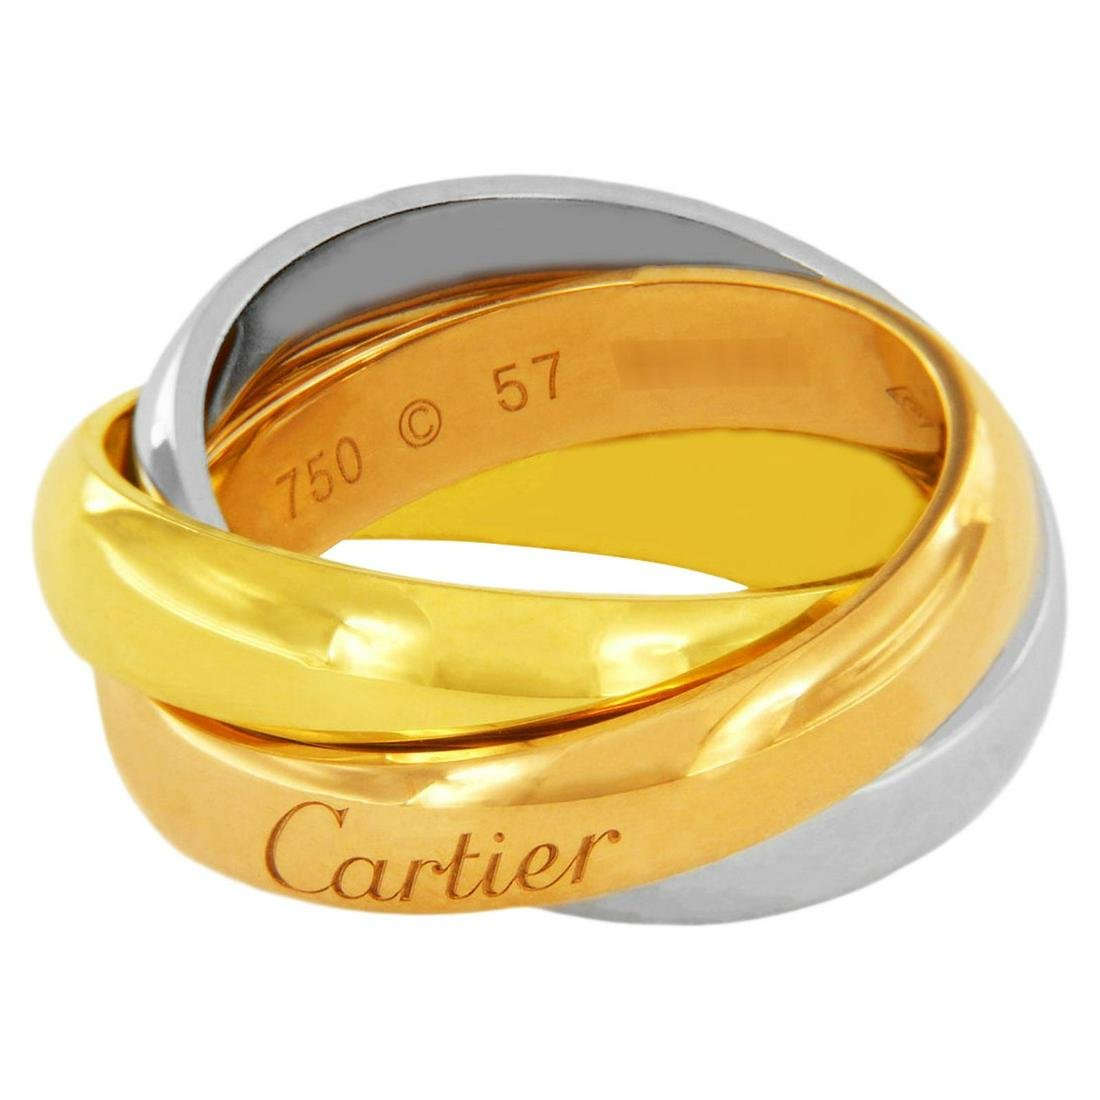 Cartier 18 Karat Gold Classic Trinity Large Ring